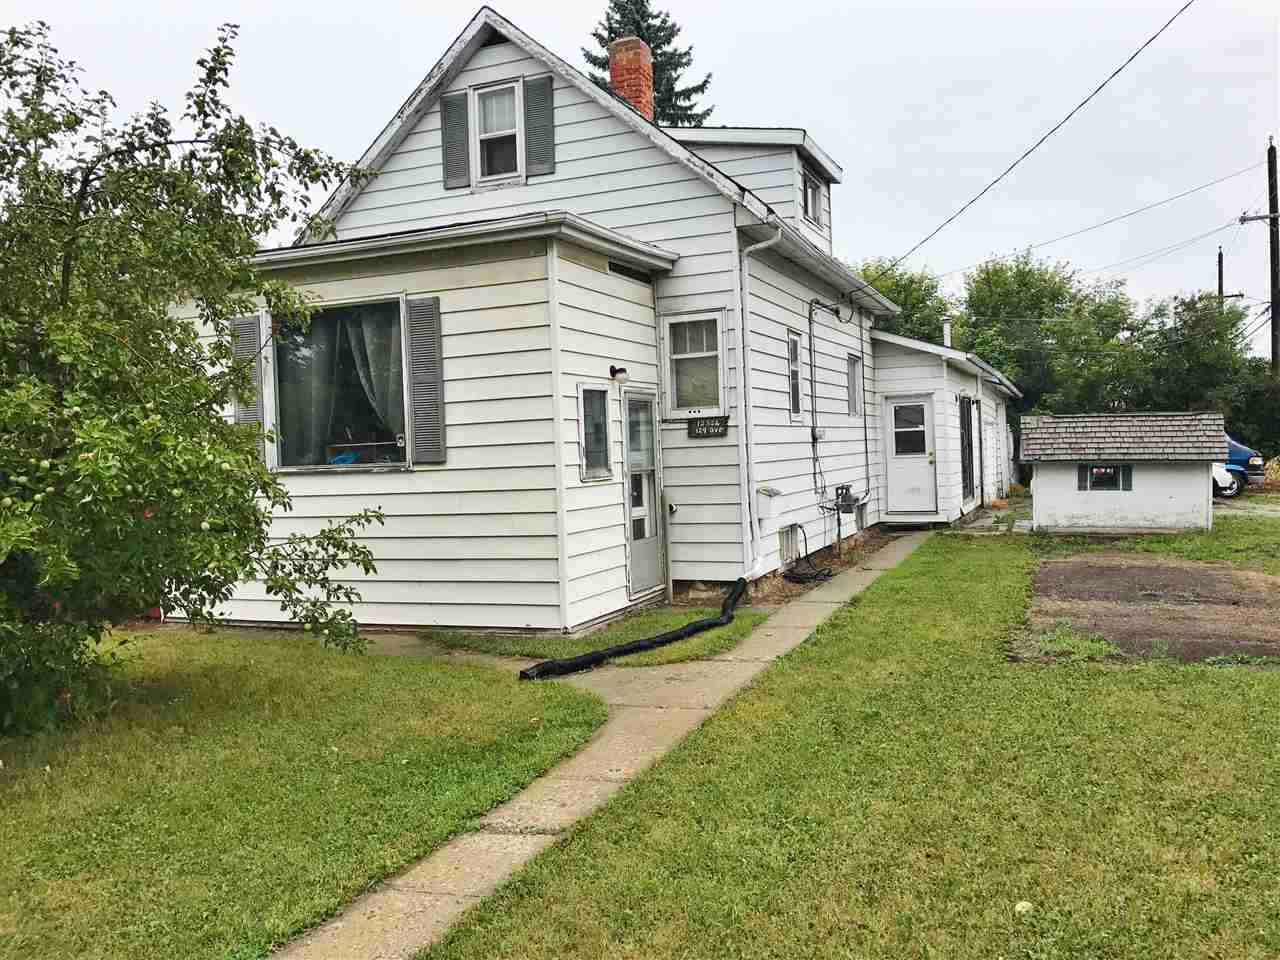 Main Photo: 12524 129 Avenue in Edmonton: Zone 01 House for sale : MLS® # E4076691